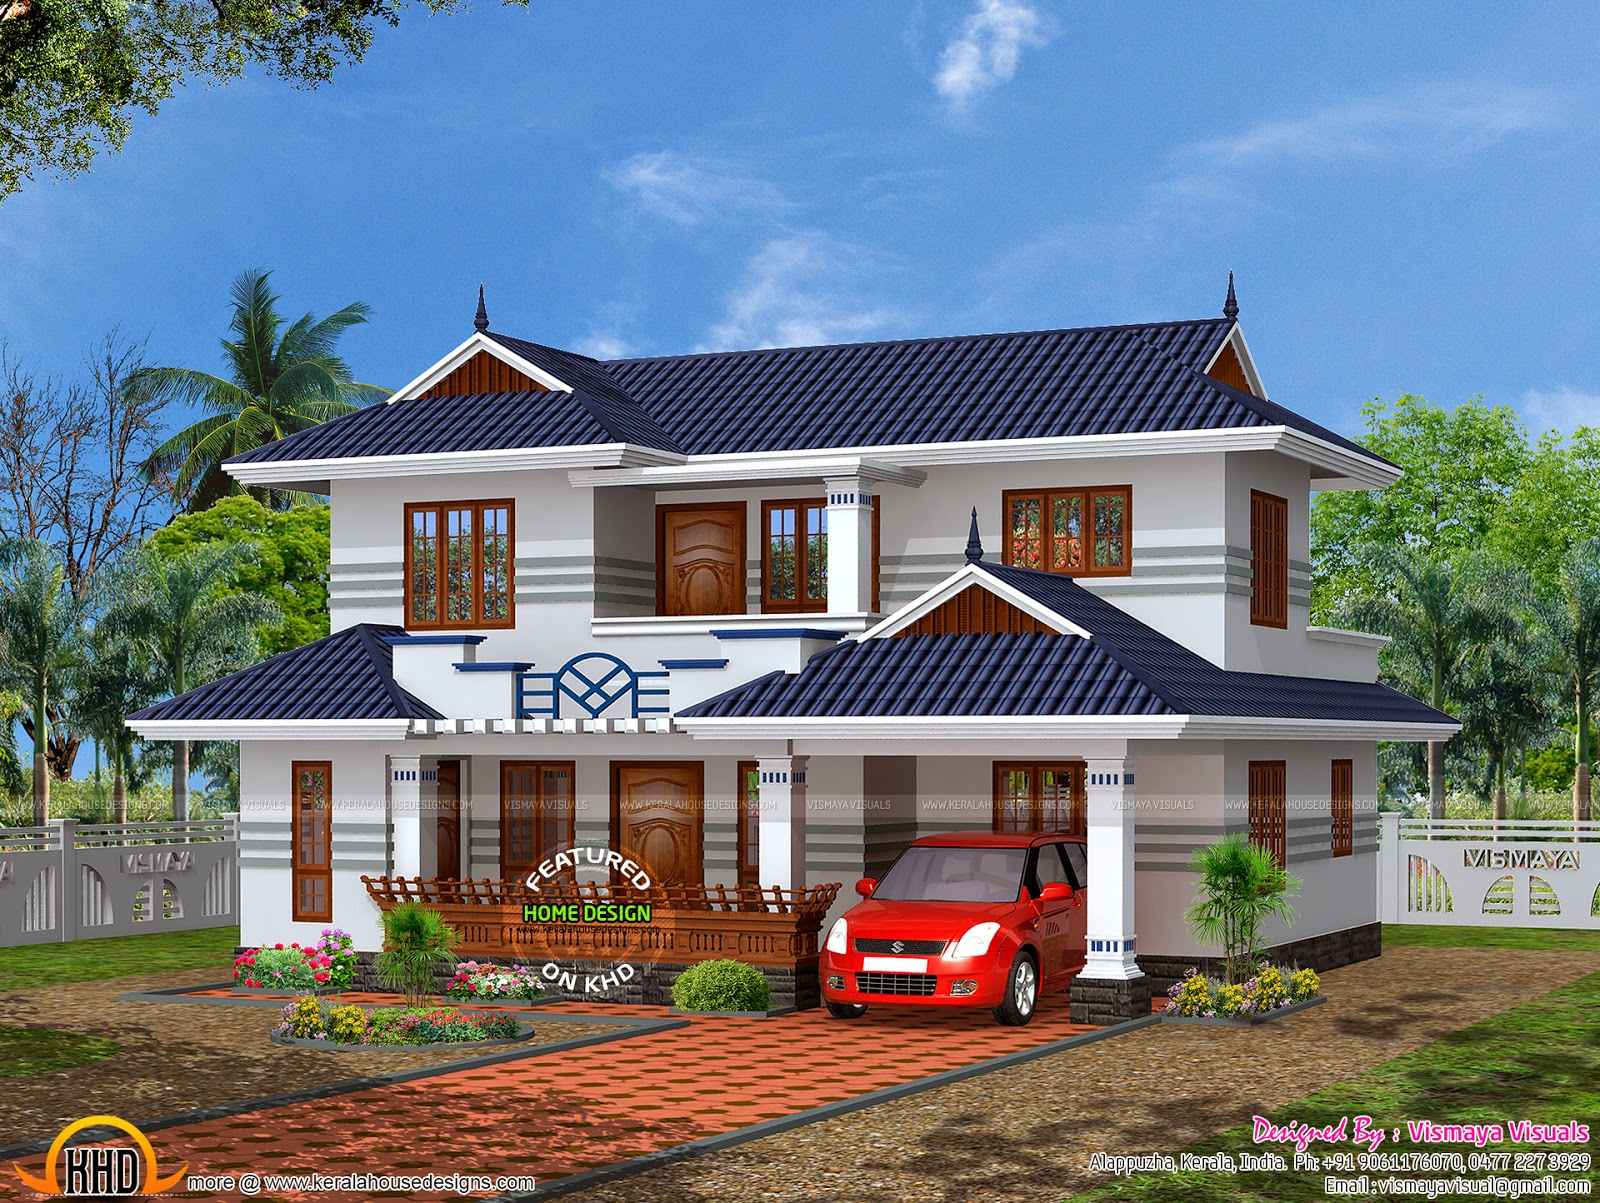 Typical Kerala house plan - Kerala home design and floor plans: www.keralahousedesigns.com/2015/05/typical-kerala-house-plan.html